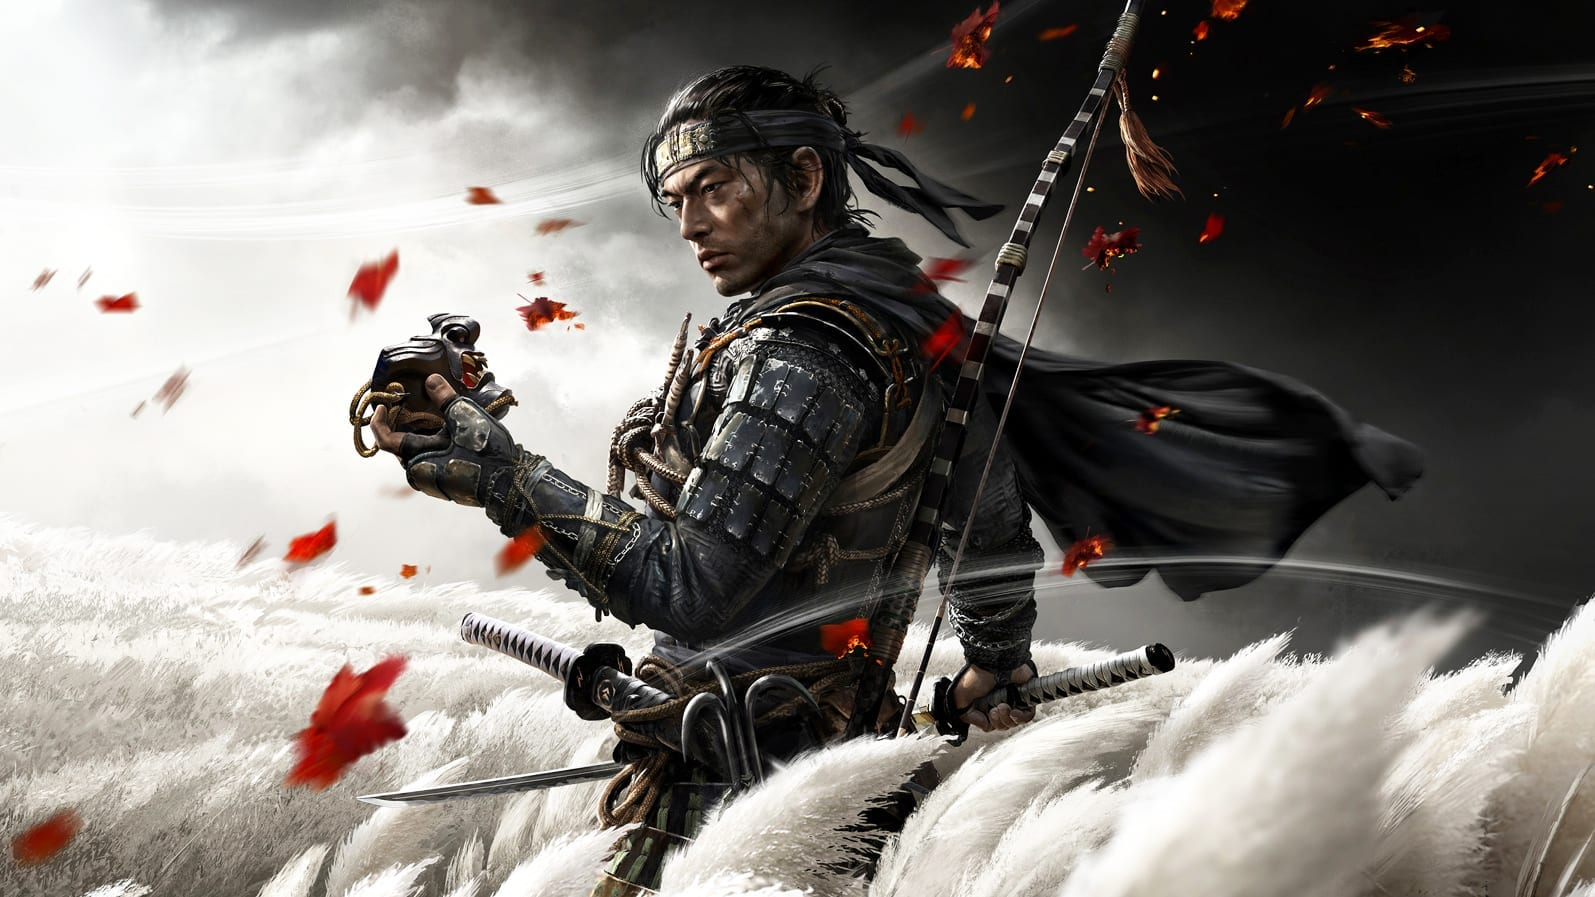 Ghost Of Tsushima Box Art Sparks Speculation Over Potential PC Release